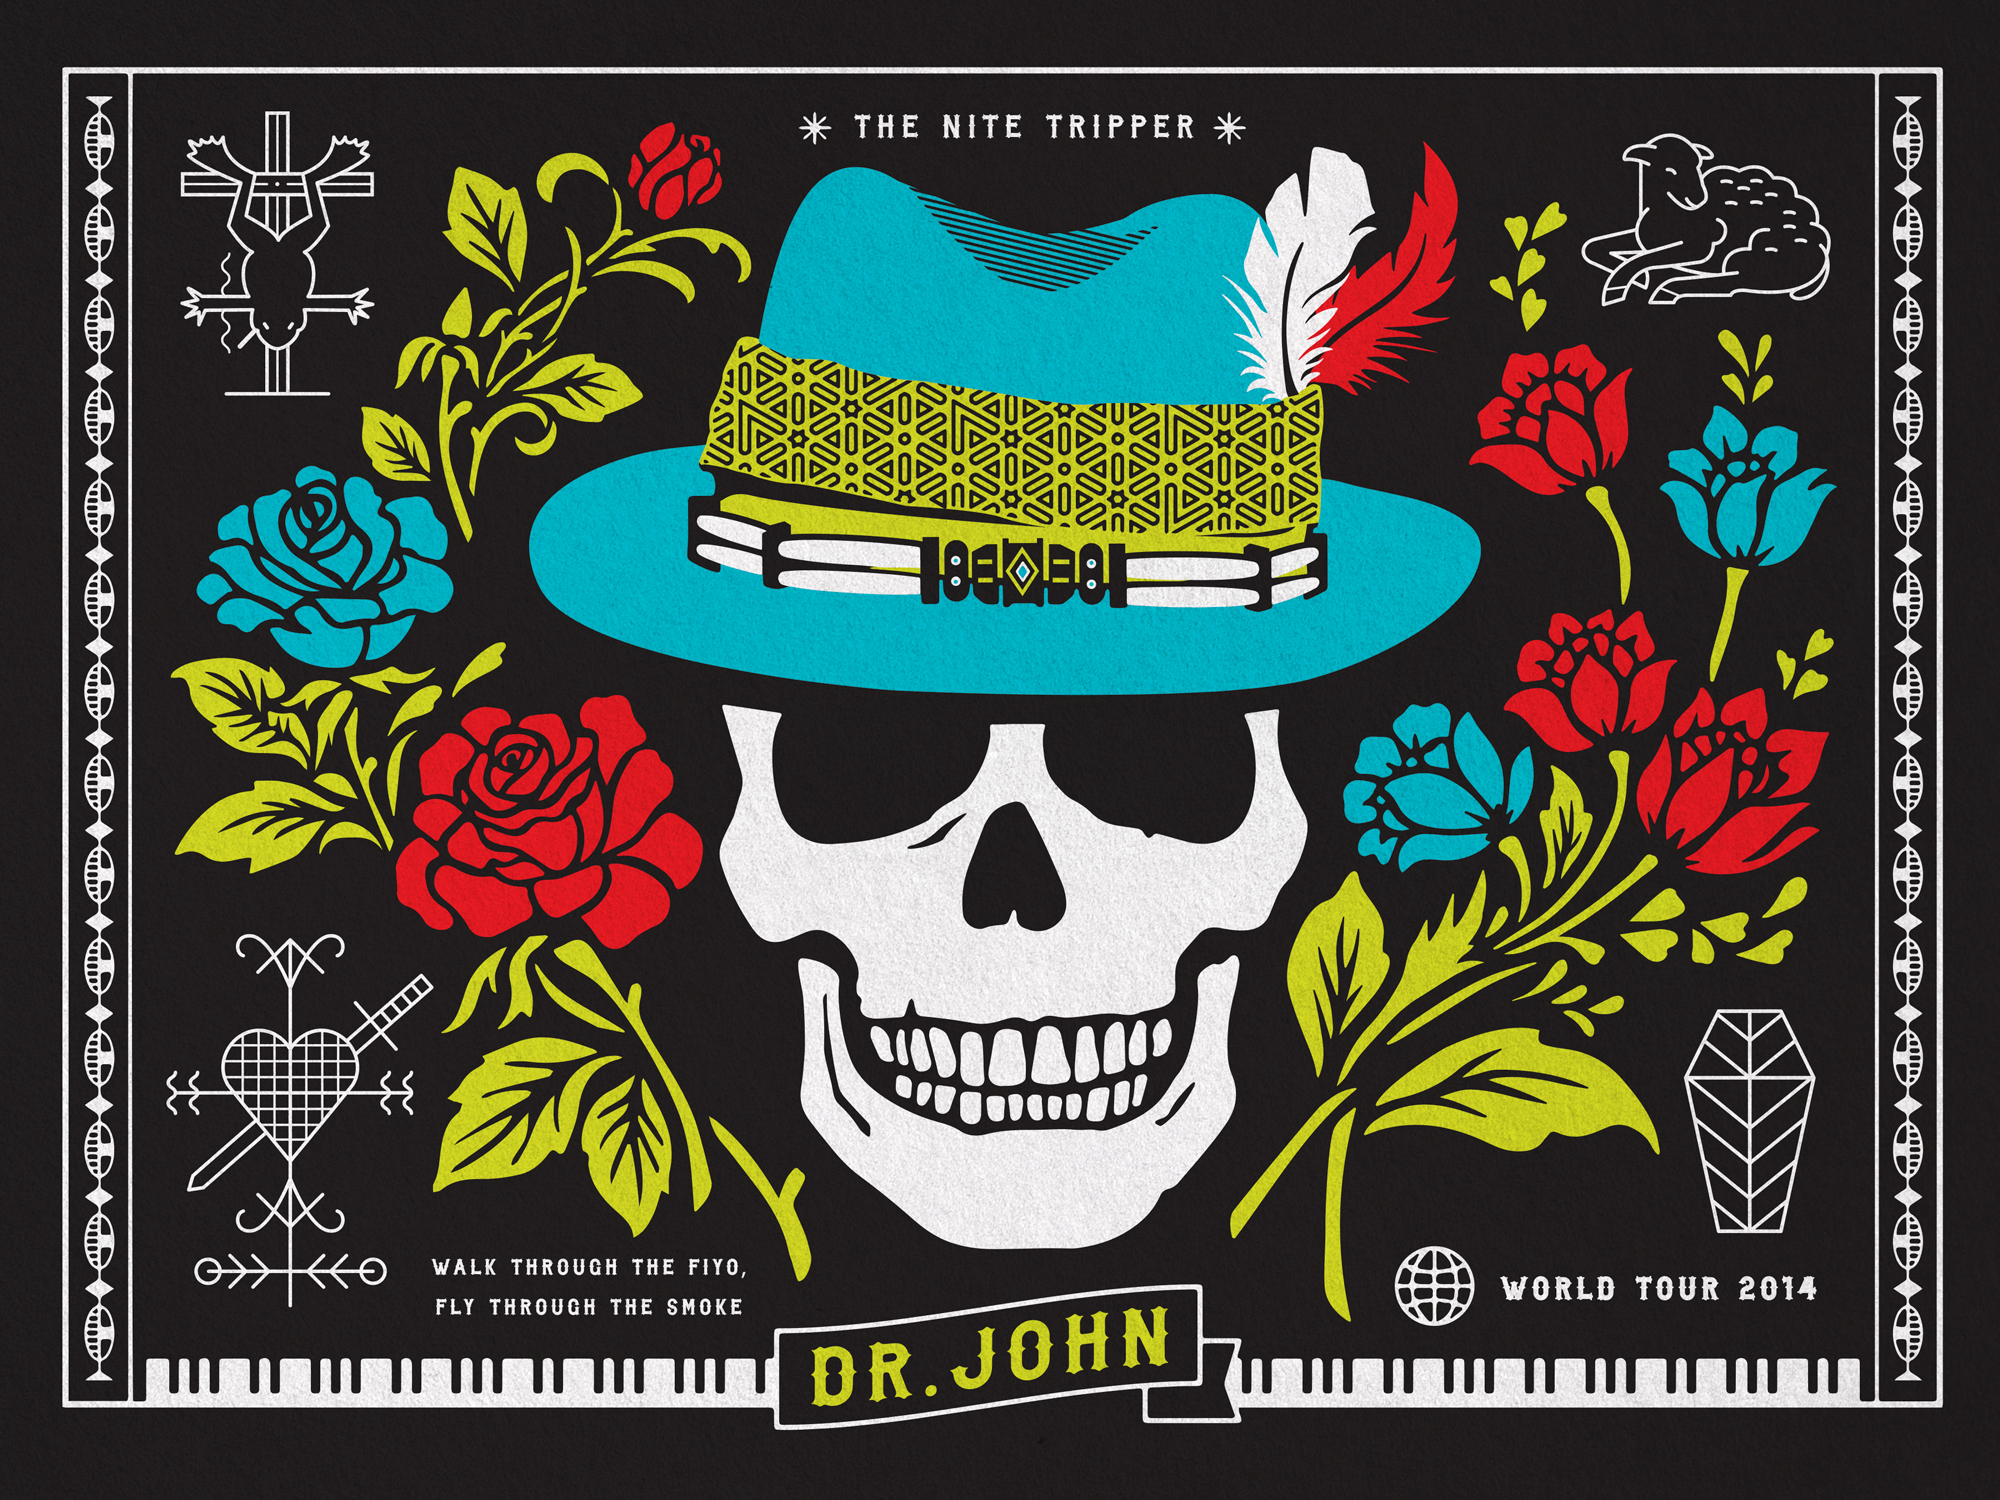 "Dr. John's  2014 World Tour.   Many thanks to Scott Peek at Standard Deluxe for giving me the opportunity to work with The Legendary - Dr. John.    The Night Tripper:  The legendary Dr. John is a six-time Grammy Award-winning musician and Rock & Roll Hall of Fame inductee. Known throughout the world as the embodiment of New Orleans' musical legacy, Dr. John is a true icon in American culture. His colorful musical career began in the 1950s when he wrote and played guitar on some of the greatest records to come out of the Crescent City, including recordings by Professor Longhair, Art Neville, Joe Tex and Frankie Ford. Dr. John headed west in the 1960s, where he continued to be in demand as a session musician, playing on records by Sonny and Cher, Van Morrison, Aretha Franklin and The Rolling Stones' ""Exile On Main St."" During that time he launched his solo career, developing the charismatic persona of Dr. John The Nite Tripper. A legend was born with his breakthrough 1968 album ""Gris-Gris,"" which introduced to the world his unique blend of voodoo mysticism, funk, rhythm & blues, psychedelic rock and Creole roots. Several of his many career highlights include the masterful album ""Sun, Moon and Herbs"" in 1971 which included cameos from Eric Clapton and Mick Jagger and 1973's ""In The Right Place,"" which contained the chart hits ""Right Place Wrong Time"" and ""Such A Night.""   In addition to his six Grammy wins (1989, 1992, 1996, 2000, 2008 and 2013), he has received six other Grammy nominations over the years. In 2007 he was nominated for ""Sippiana Hericane,"" his Hurricane Katrina benefit disc. After Hurricane Katrina Dr. John immediately stepped up to the plate with generous relief fund-raising concerts and recordings. In 2007 he was also inducted into the Louisiana Music Hall of Fame and the Blues Hall of Fame. In 2008 he released ""City That Care Forgot,"" winning him a Grammy for Best Contemporary Blues Album. His latest album ""Locked Down"", released in 2012 with Dan Auerbach of The Black Keys also won a Grammy for Best Contemporary Blues Album."